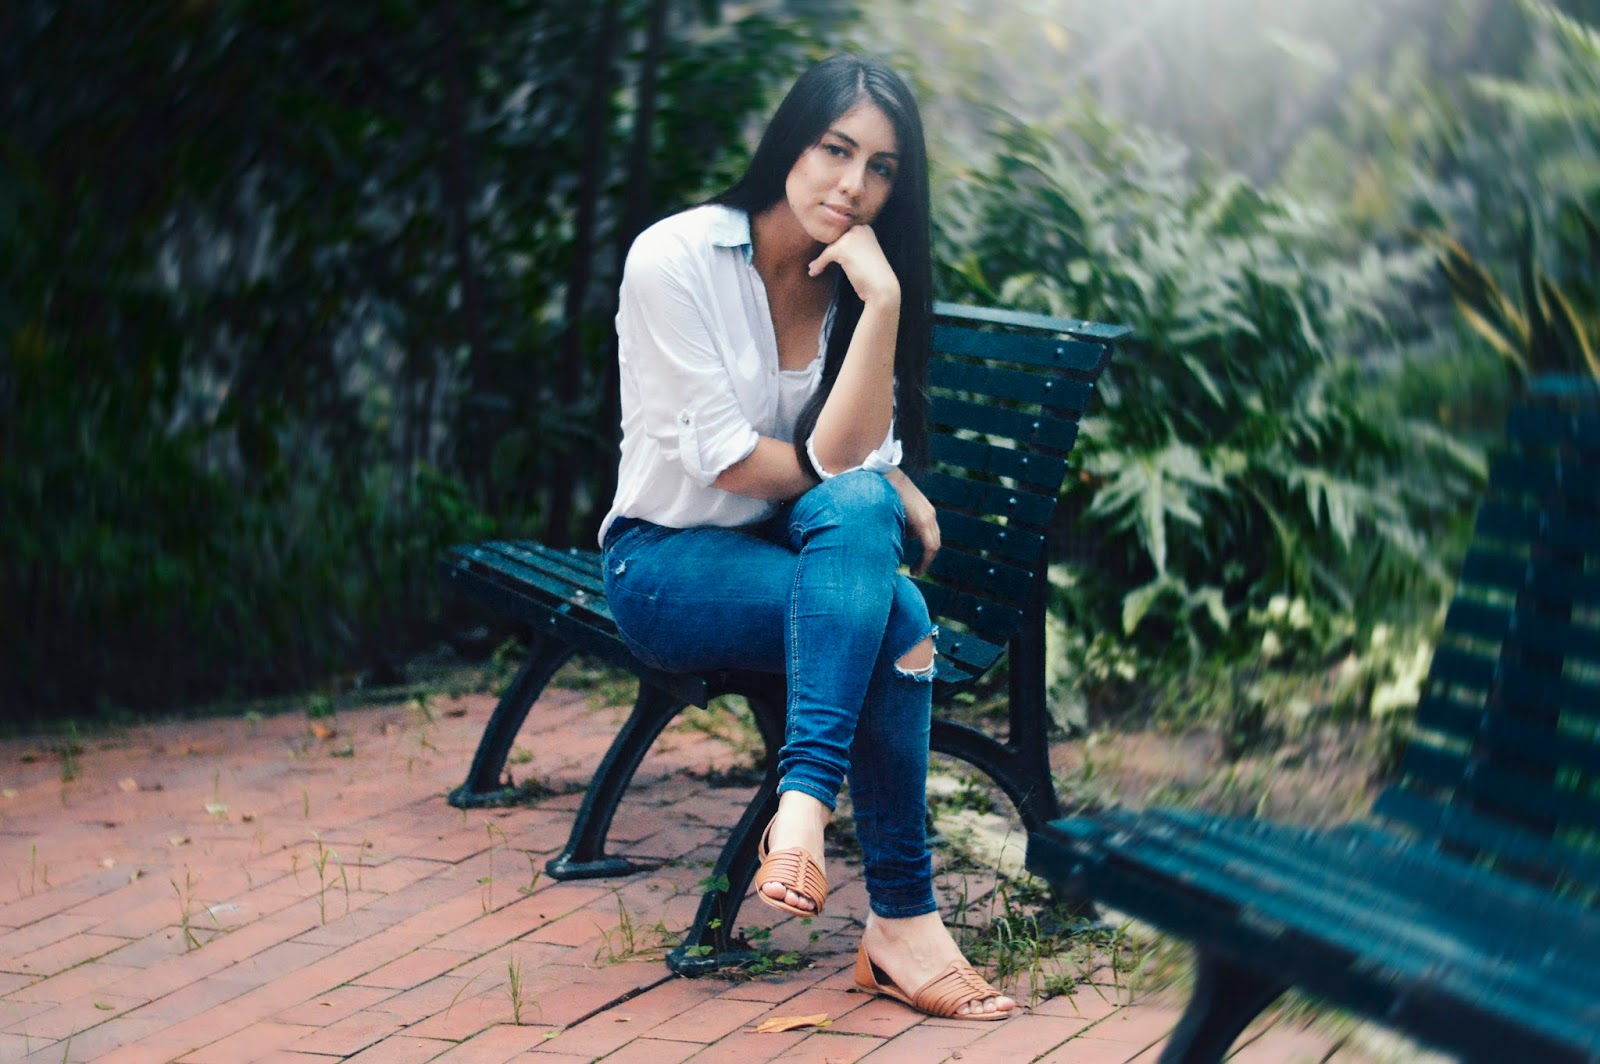 silvia-armas-white-out-blusa-denim-casual-tumblr-girl-top-style-fashion-blogger-ecuador